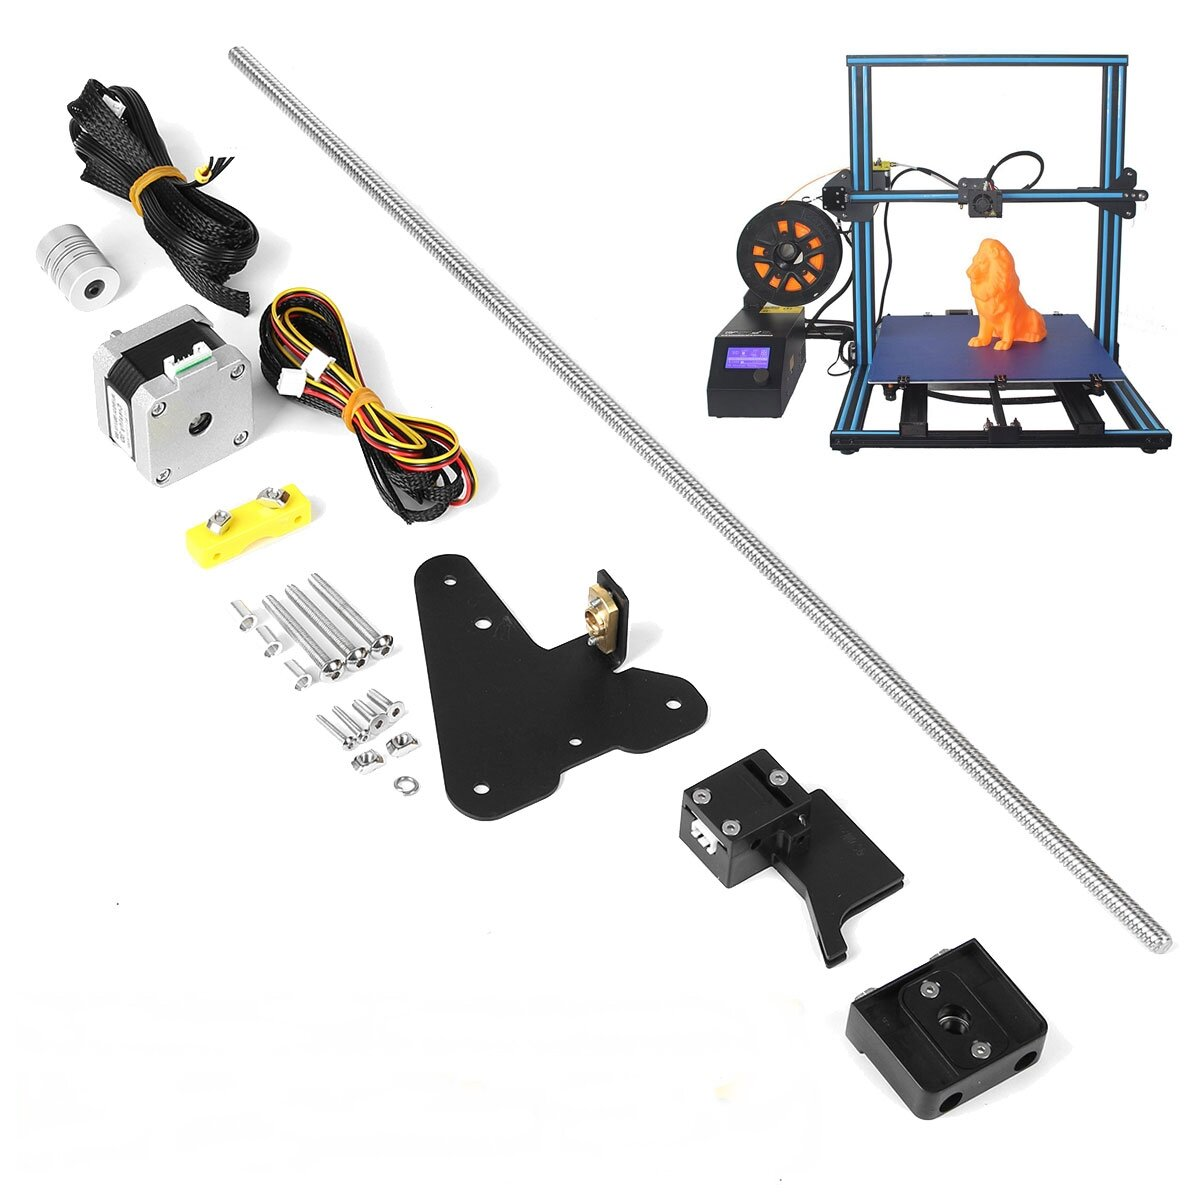 Creality 3D® Dual Z-axis Upgrade Kit + Filament Sensor Kits For CR-10 3D Printer